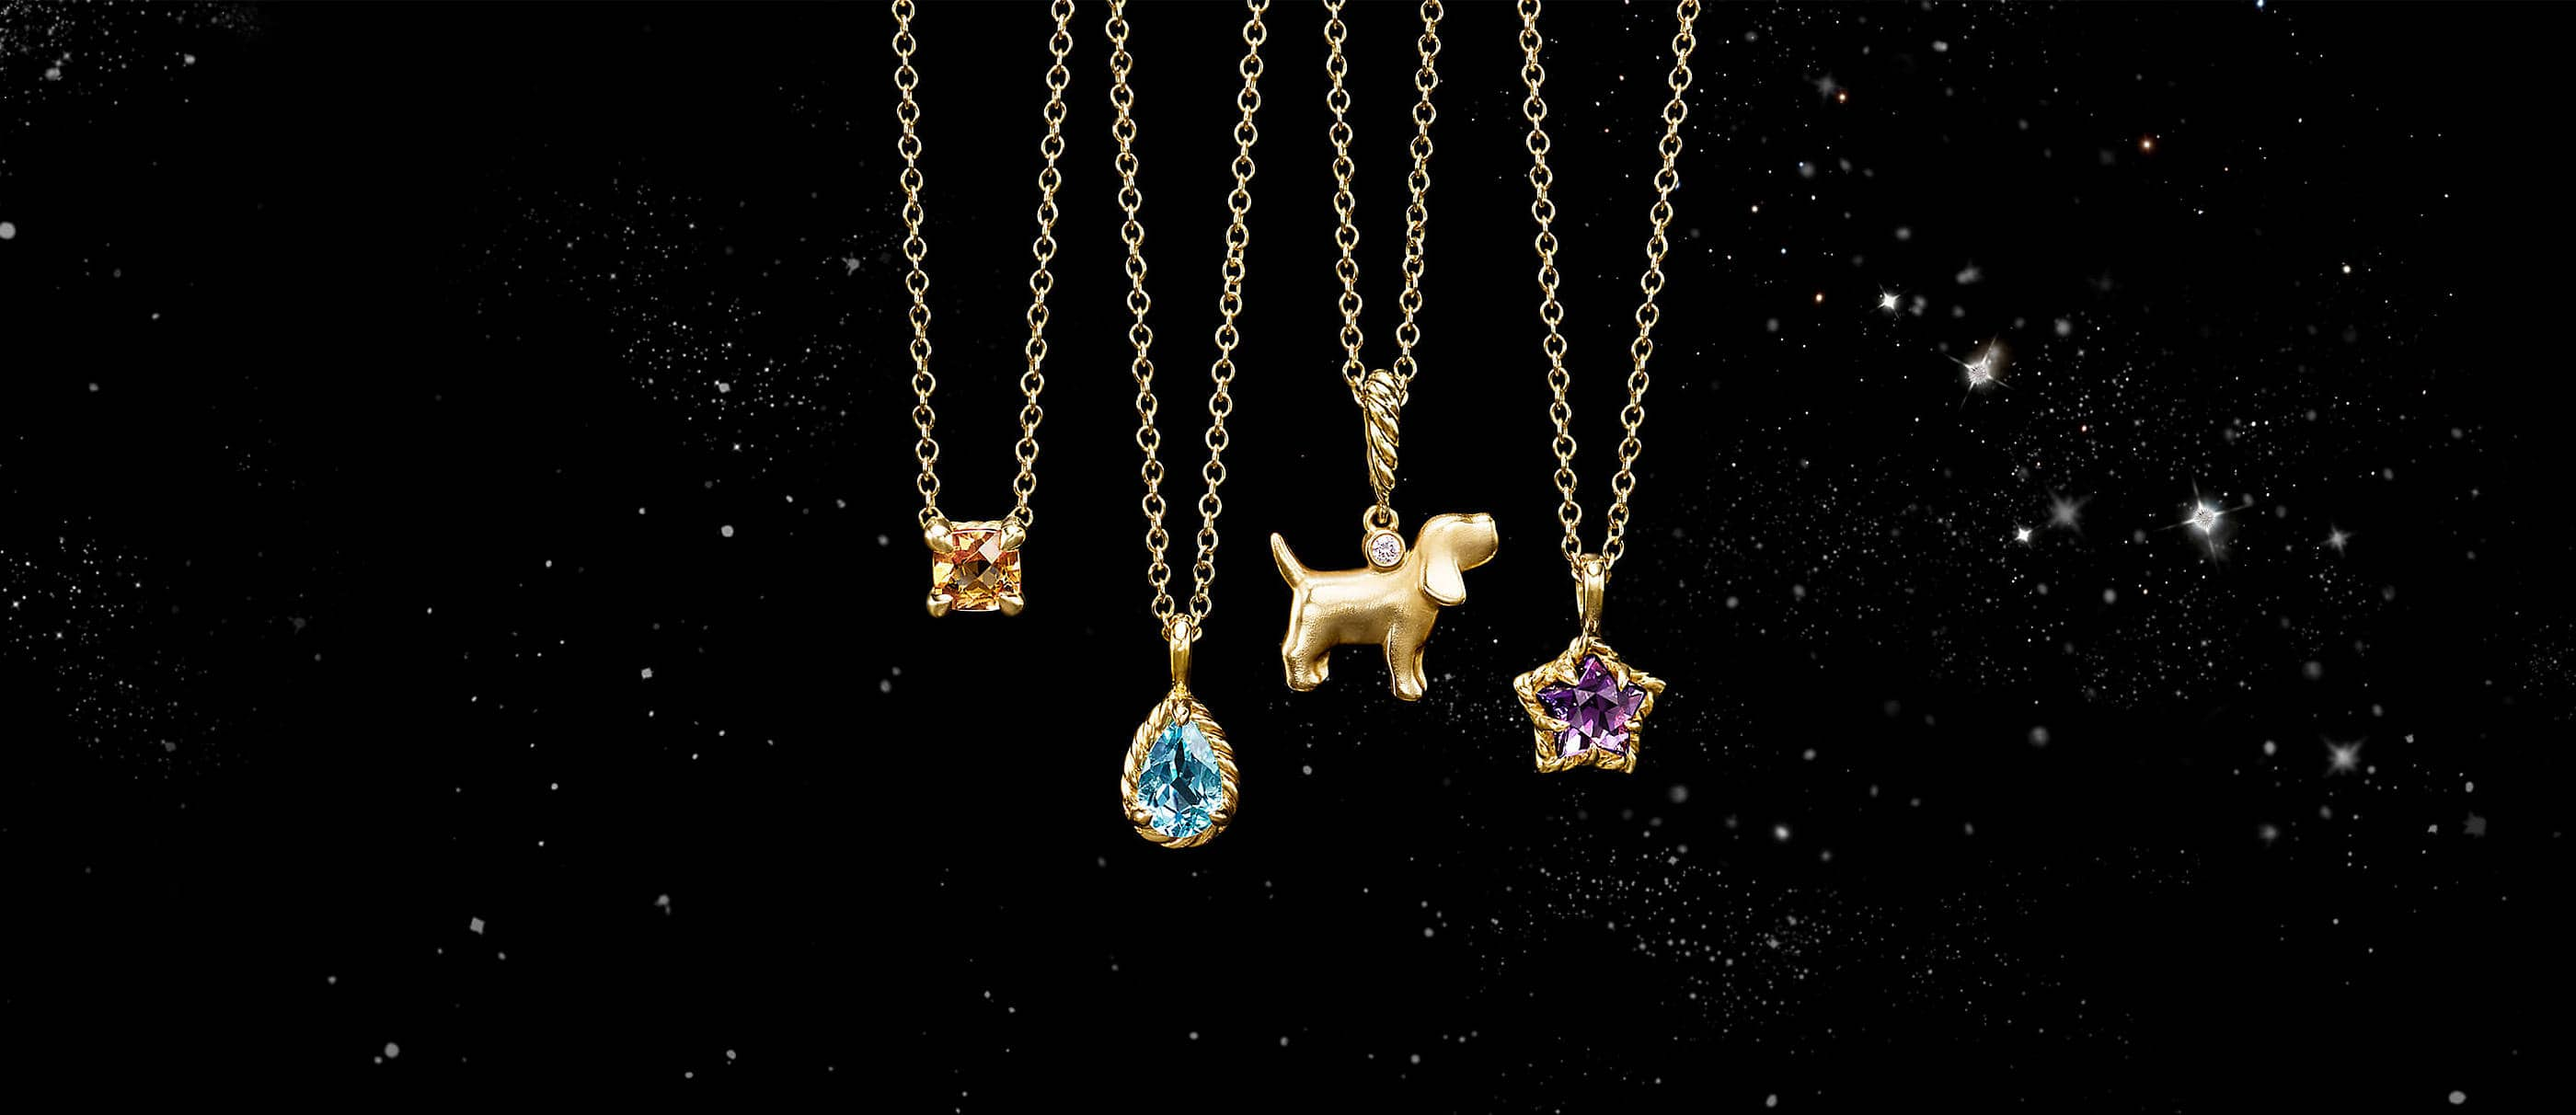 A color photograph shows four David Yurman children's pendant necklaces floating in front of a starry night sky. The necklaces are crafted from 18K yellow gold with colored gemstone pendants or a charm shaped like a dog with a single diamond.